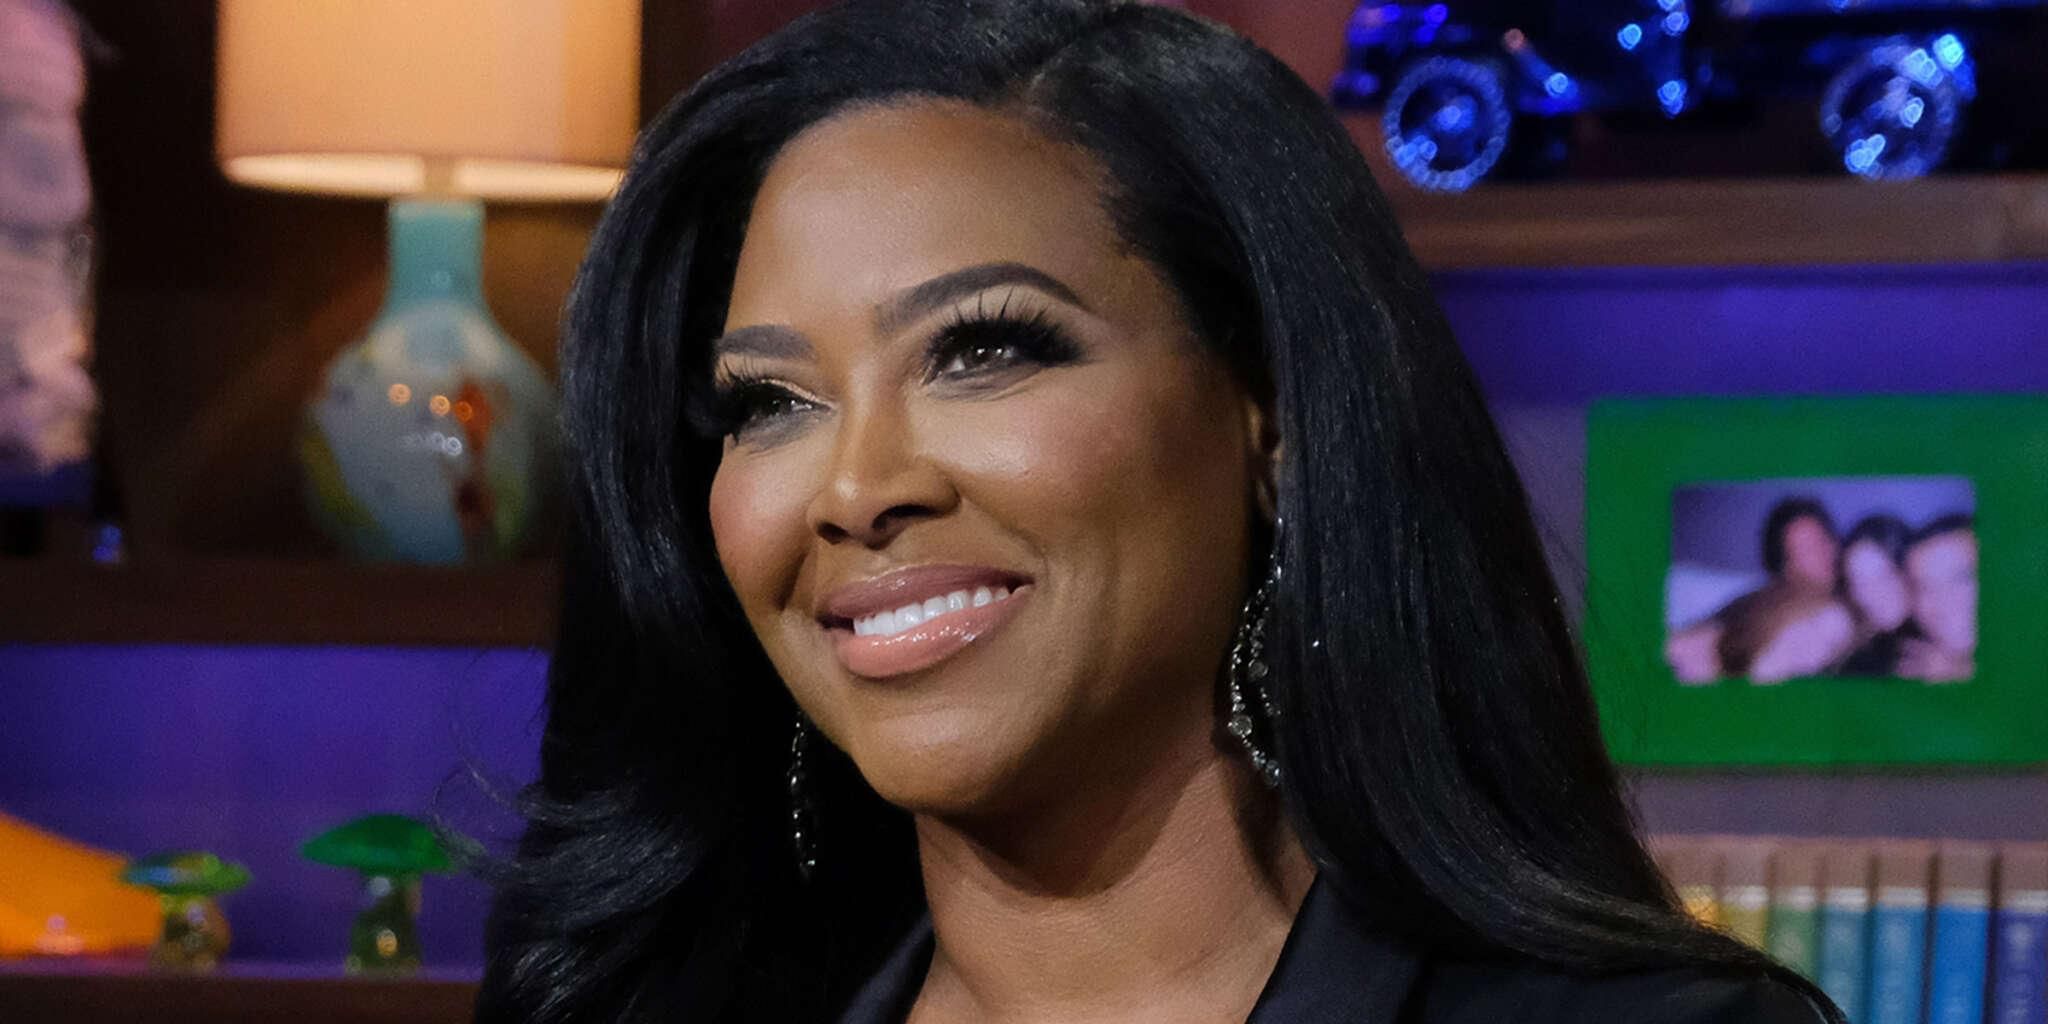 Kenya Moore Flexes For The 'Gram And Fans Are Right Here For It - See Her Juicy Photo